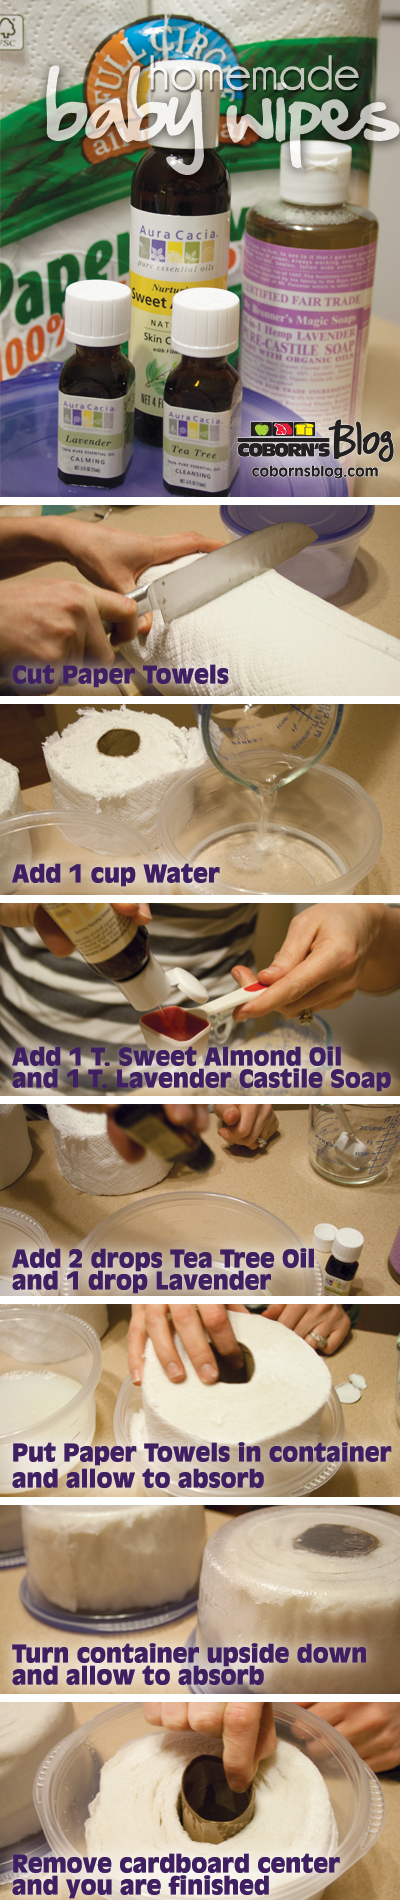 How to make homemade baby wipes.